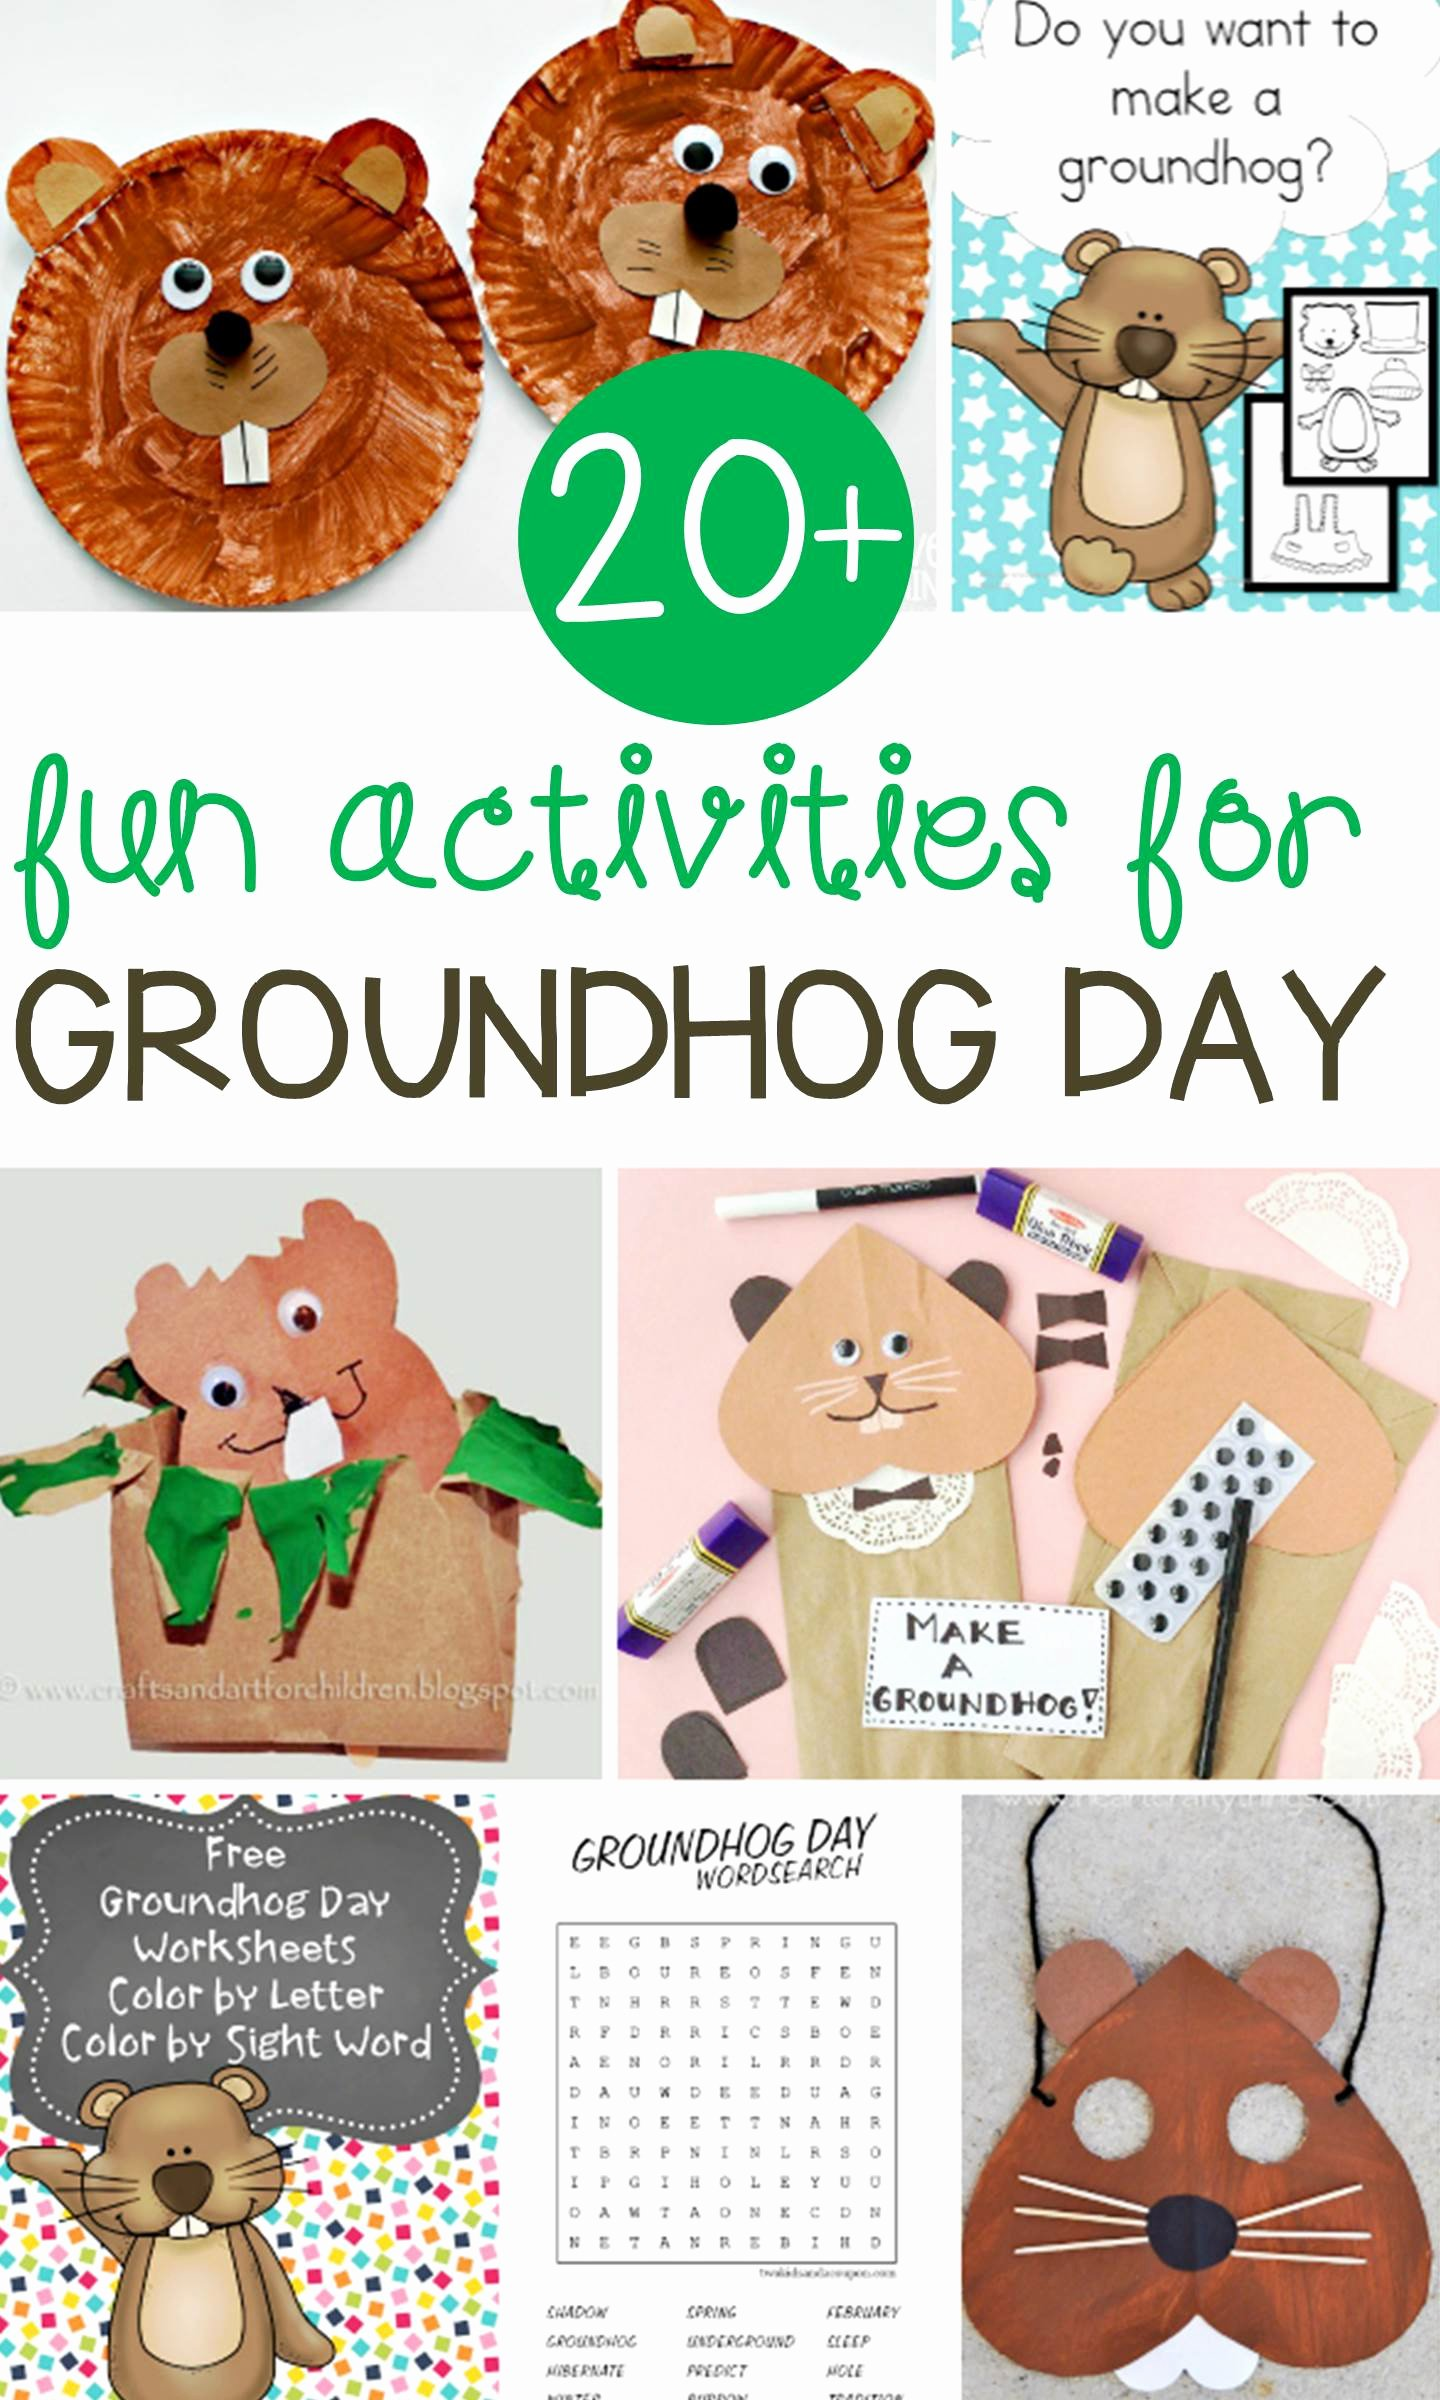 Groundhog Day Worksheets for Preschoolers Free Fun Groundhog Day Activities for Kids Learn & Celebrate